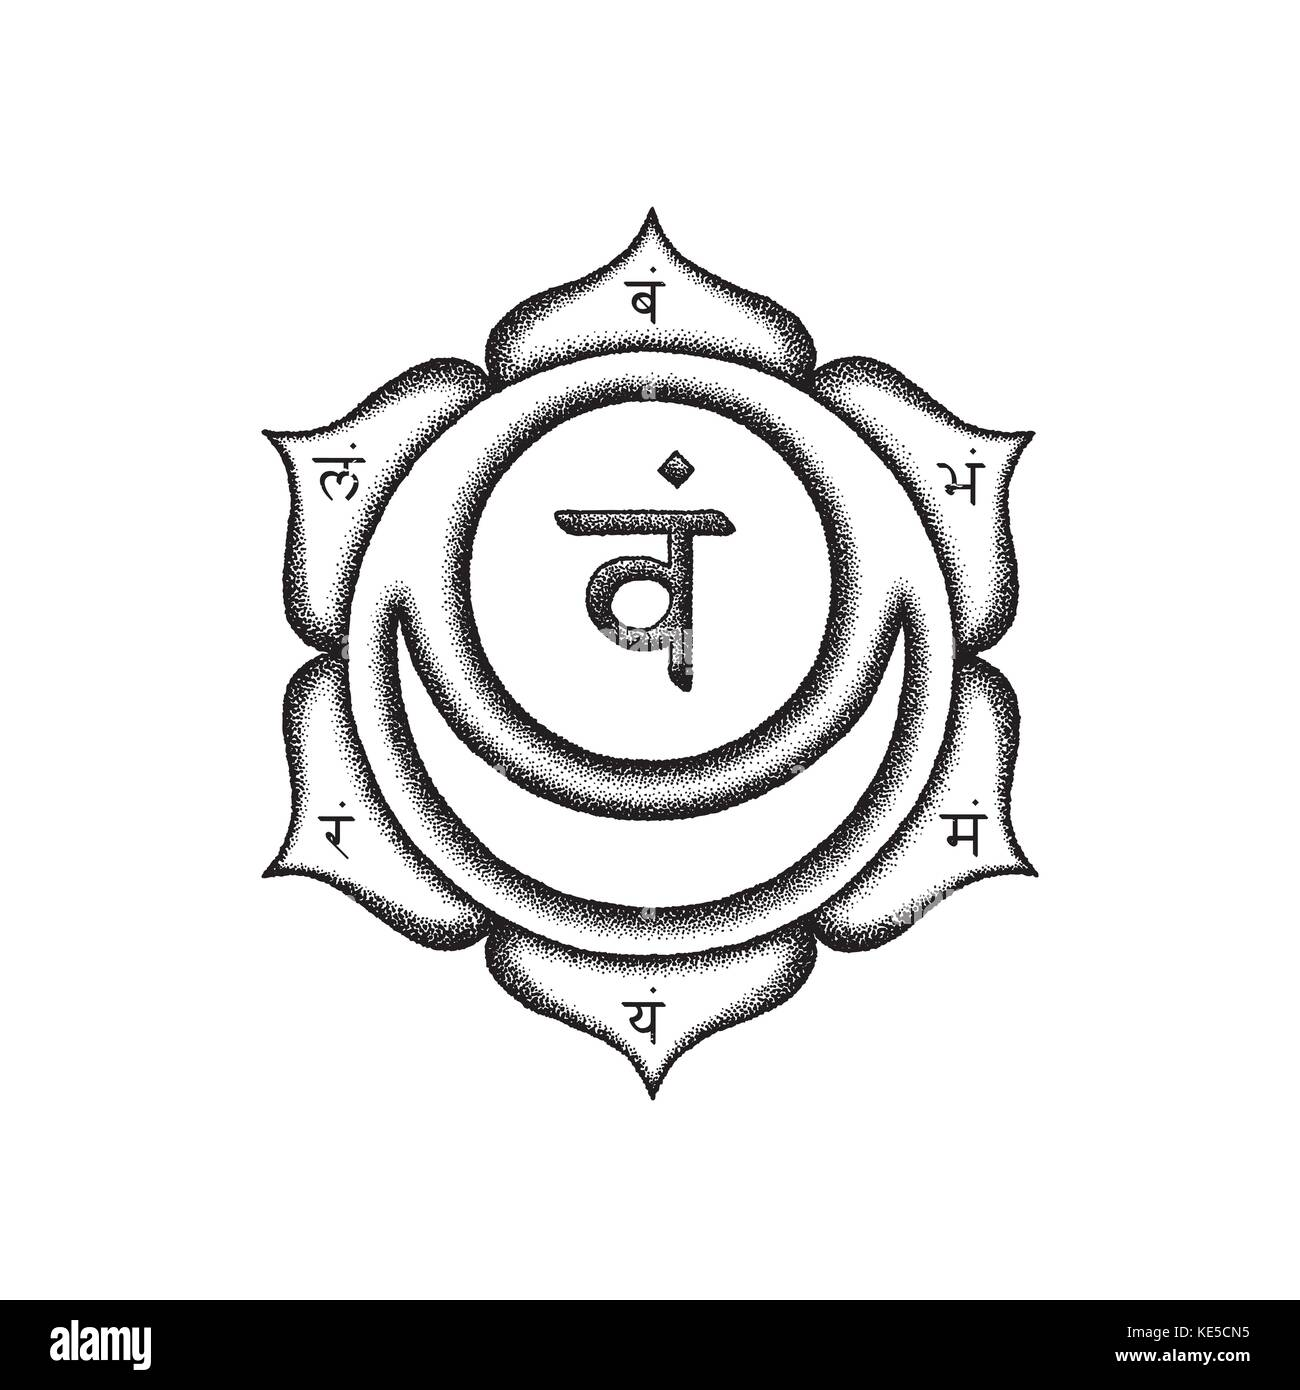 Vector second Svadhishthana sacral chakra sanskrit seed mantra Vam hinduism syllables on lotus petals. Dot work - Stock Image